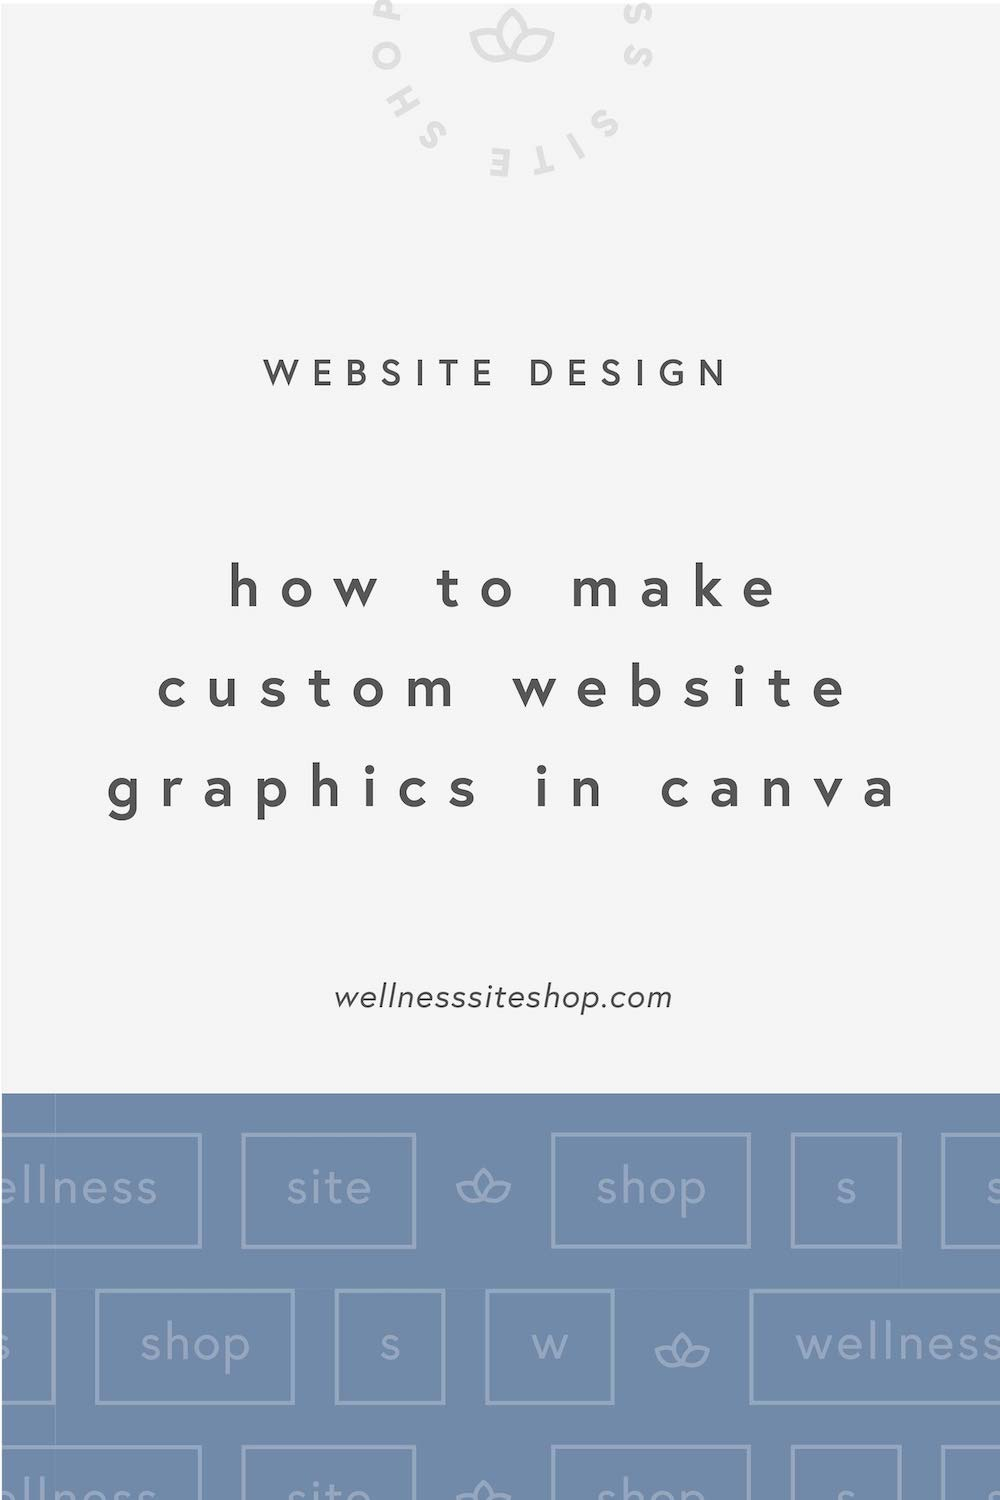 How to make custom website graphics in Canva.jpg